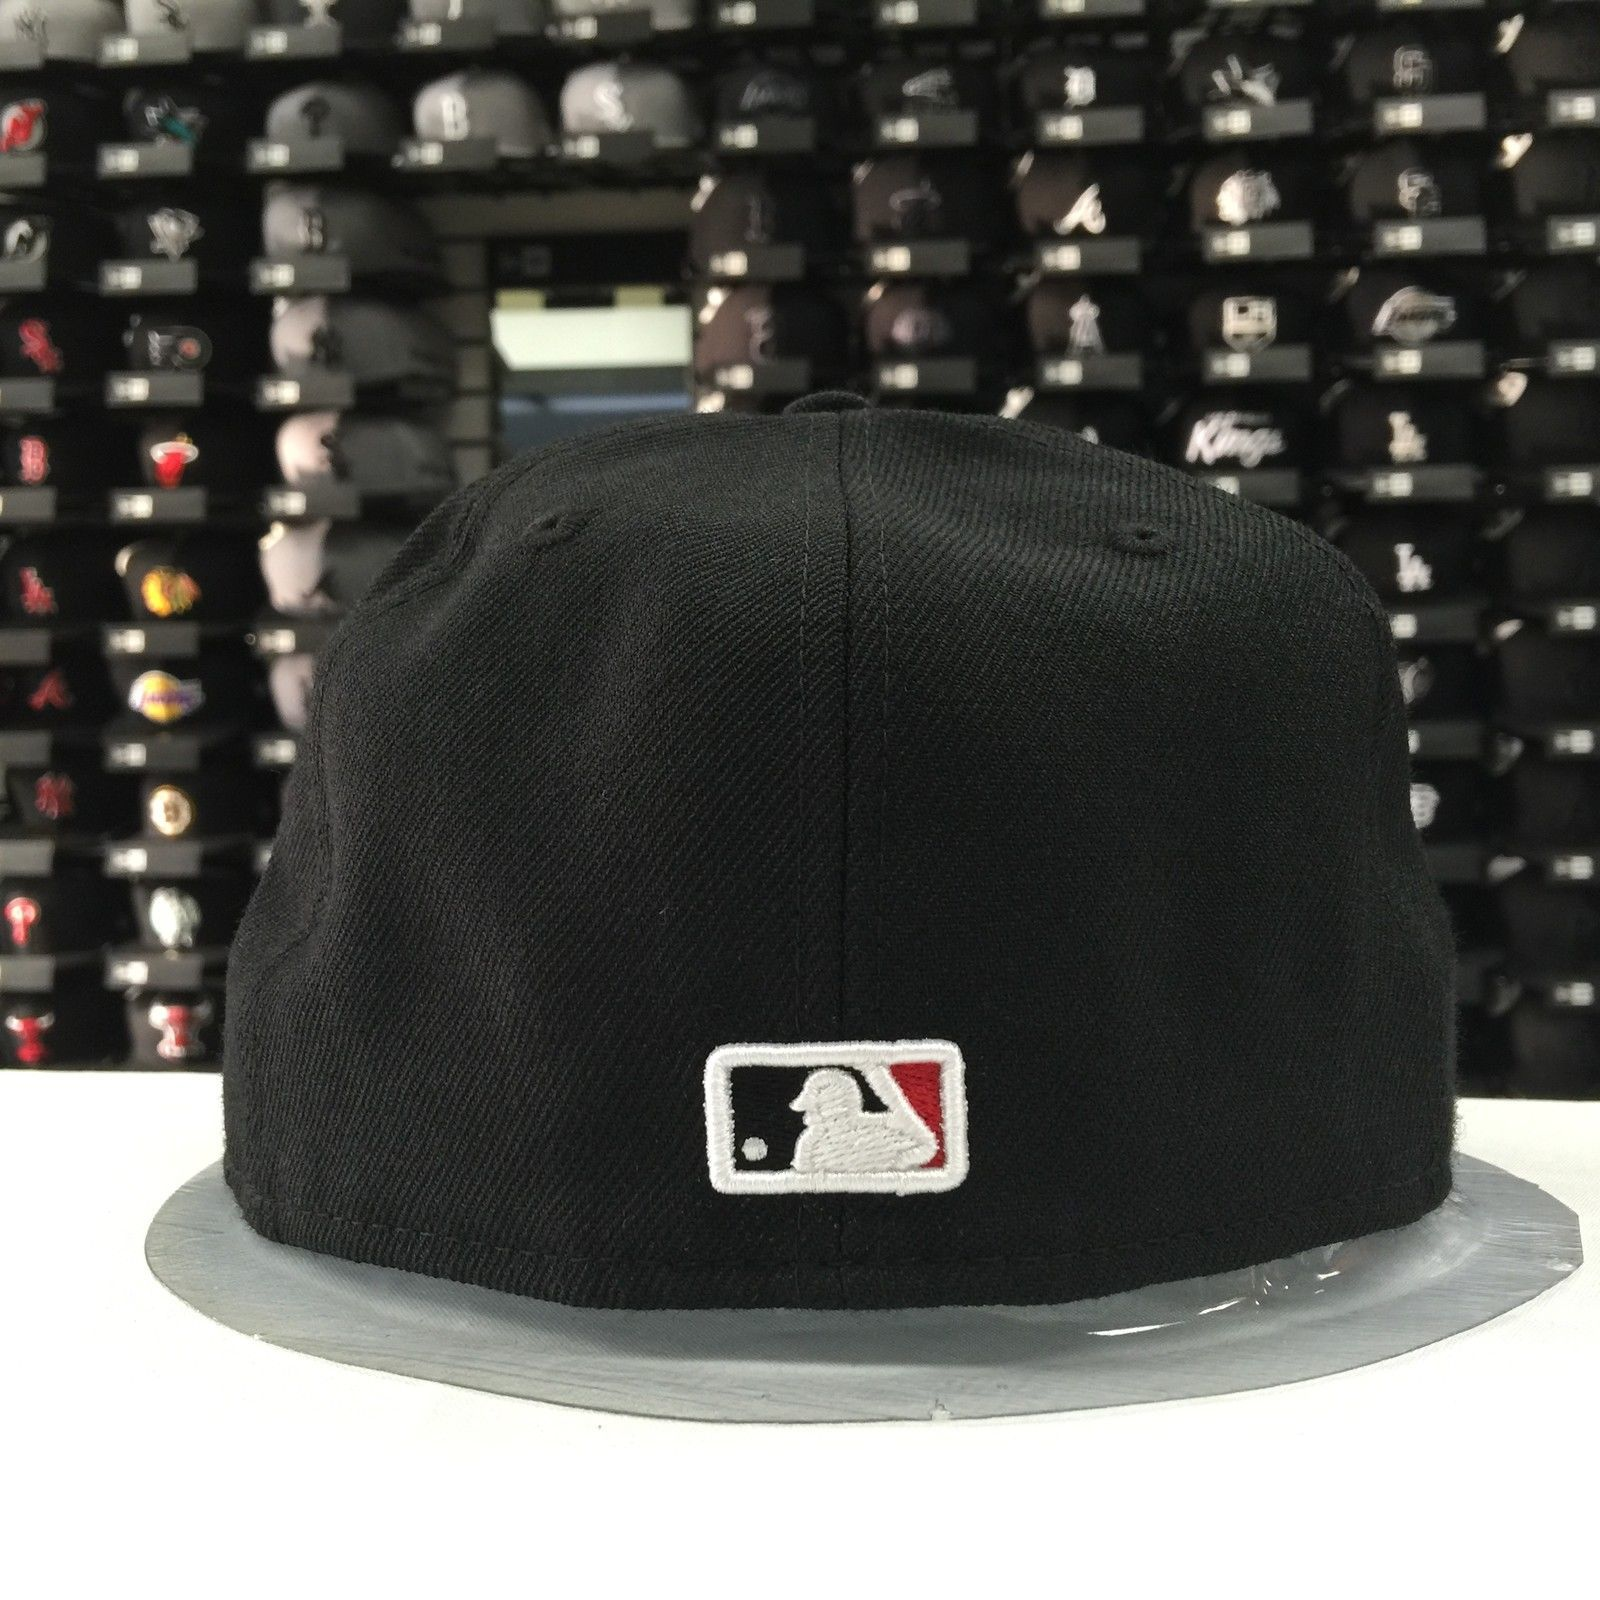 New Era 59Fifty MLB Los Angeles Dodgers Black Red 5950 Baseball Fitted Cap Hat